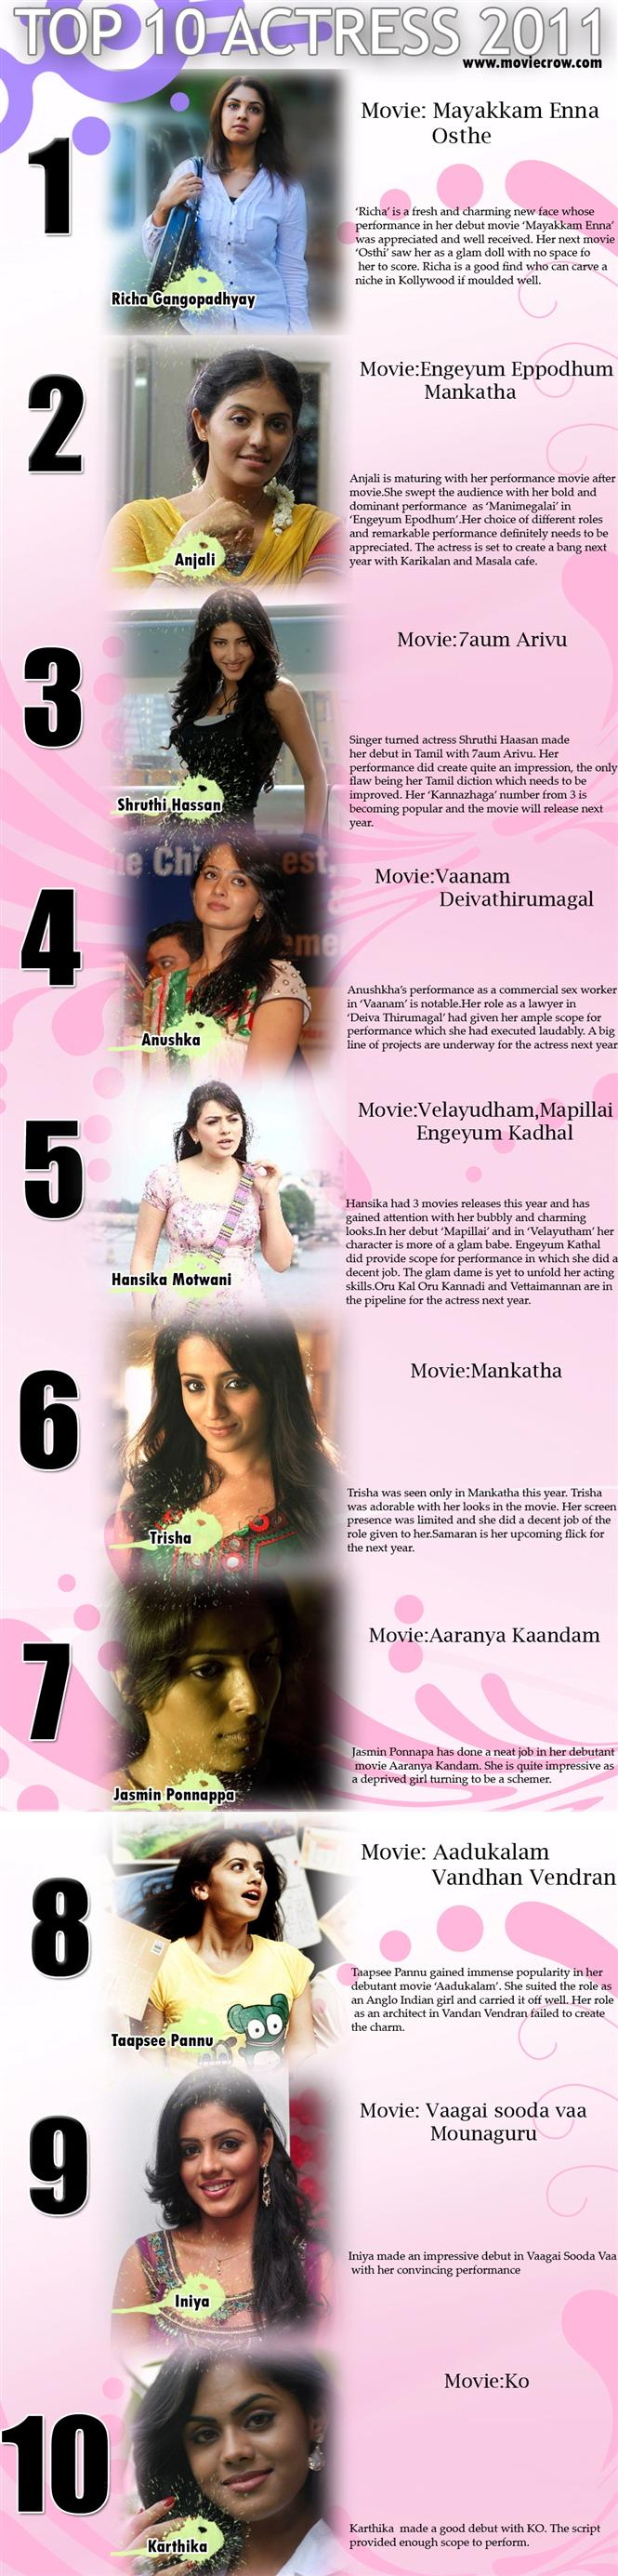 best actress of 2011 tamil movies tamil movie music